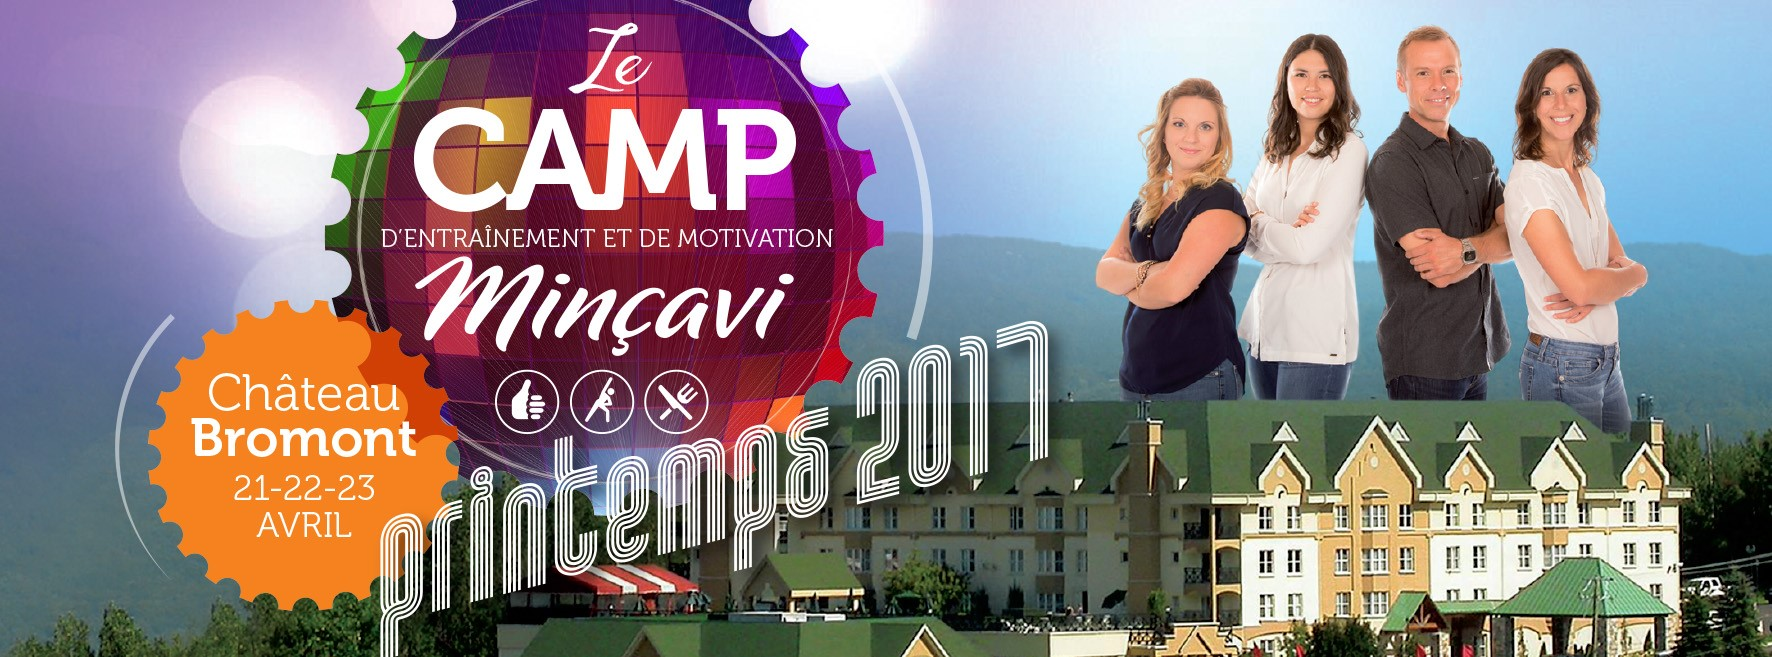 Camp Minçavi 2017